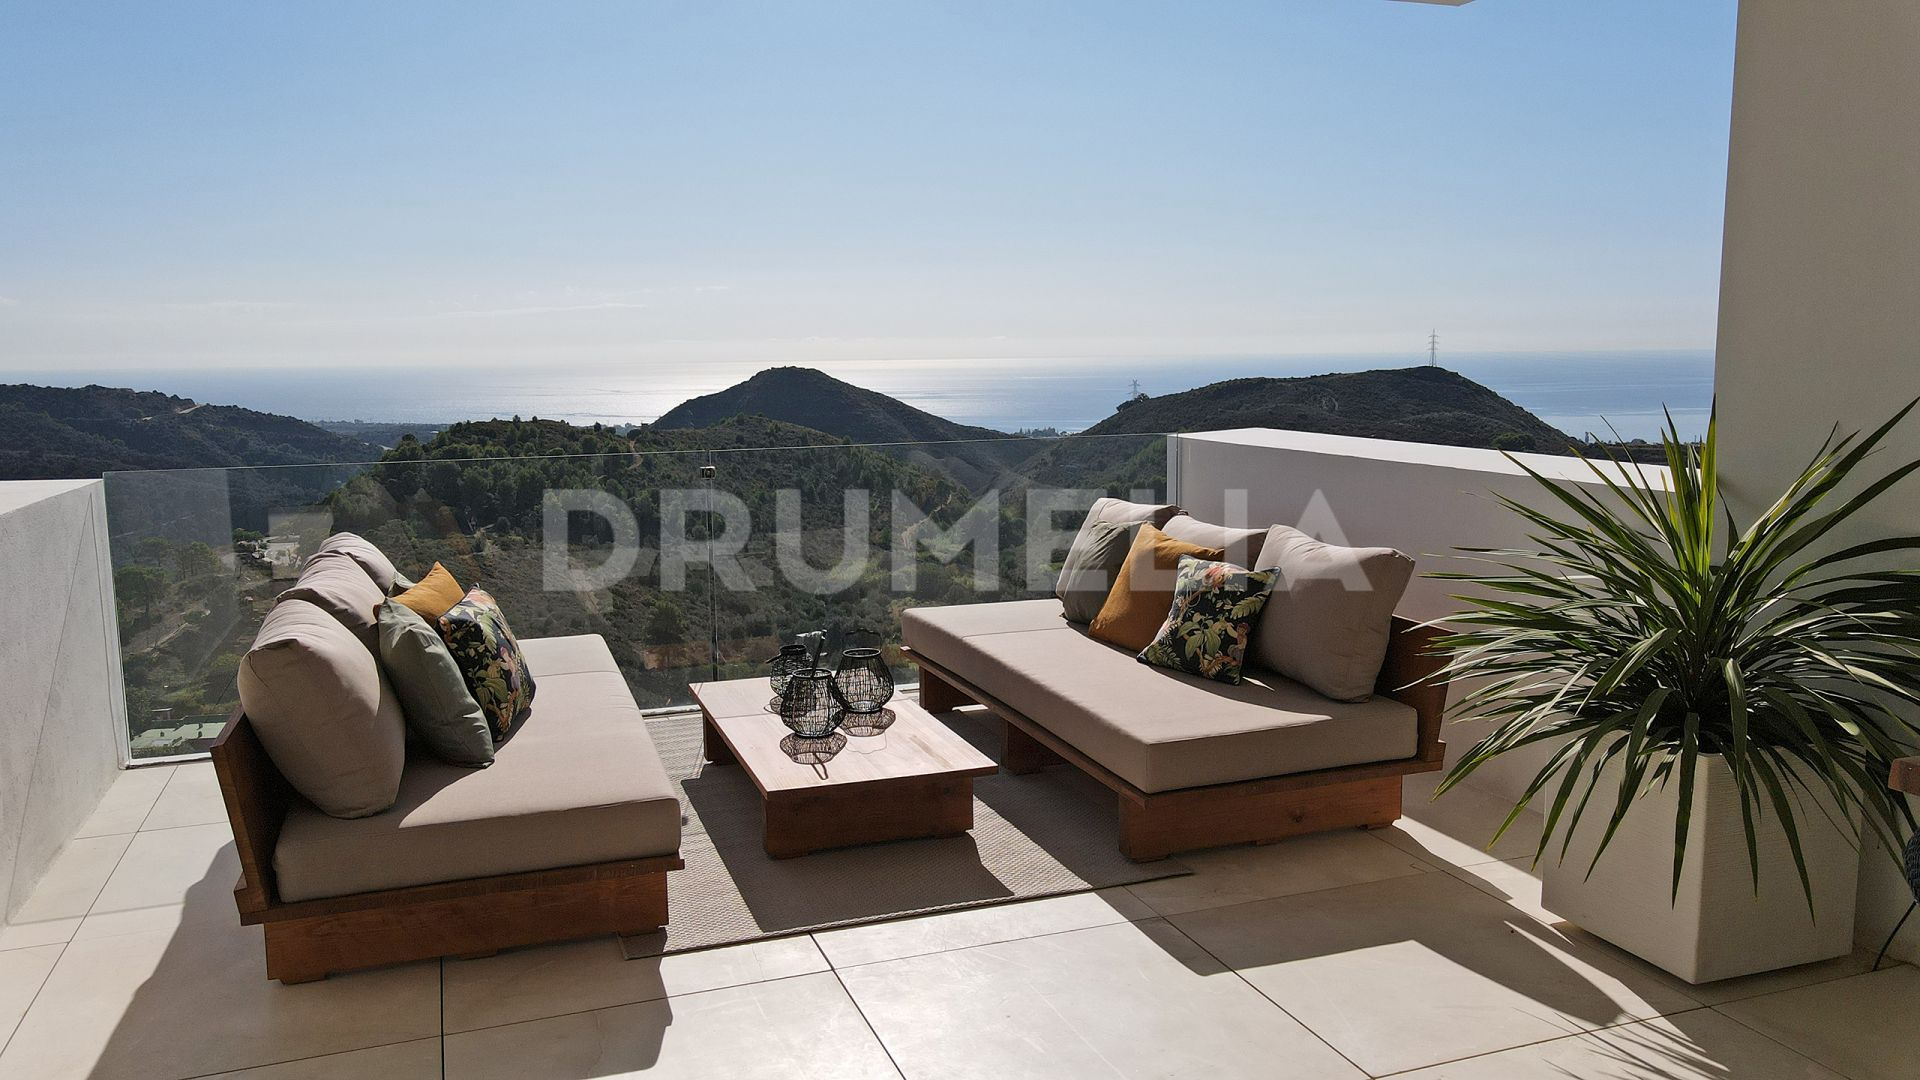 Ojen, Brand- New Modern Turnkey Apartment with Sea Views in Palo Alto, Ojen-Marbella